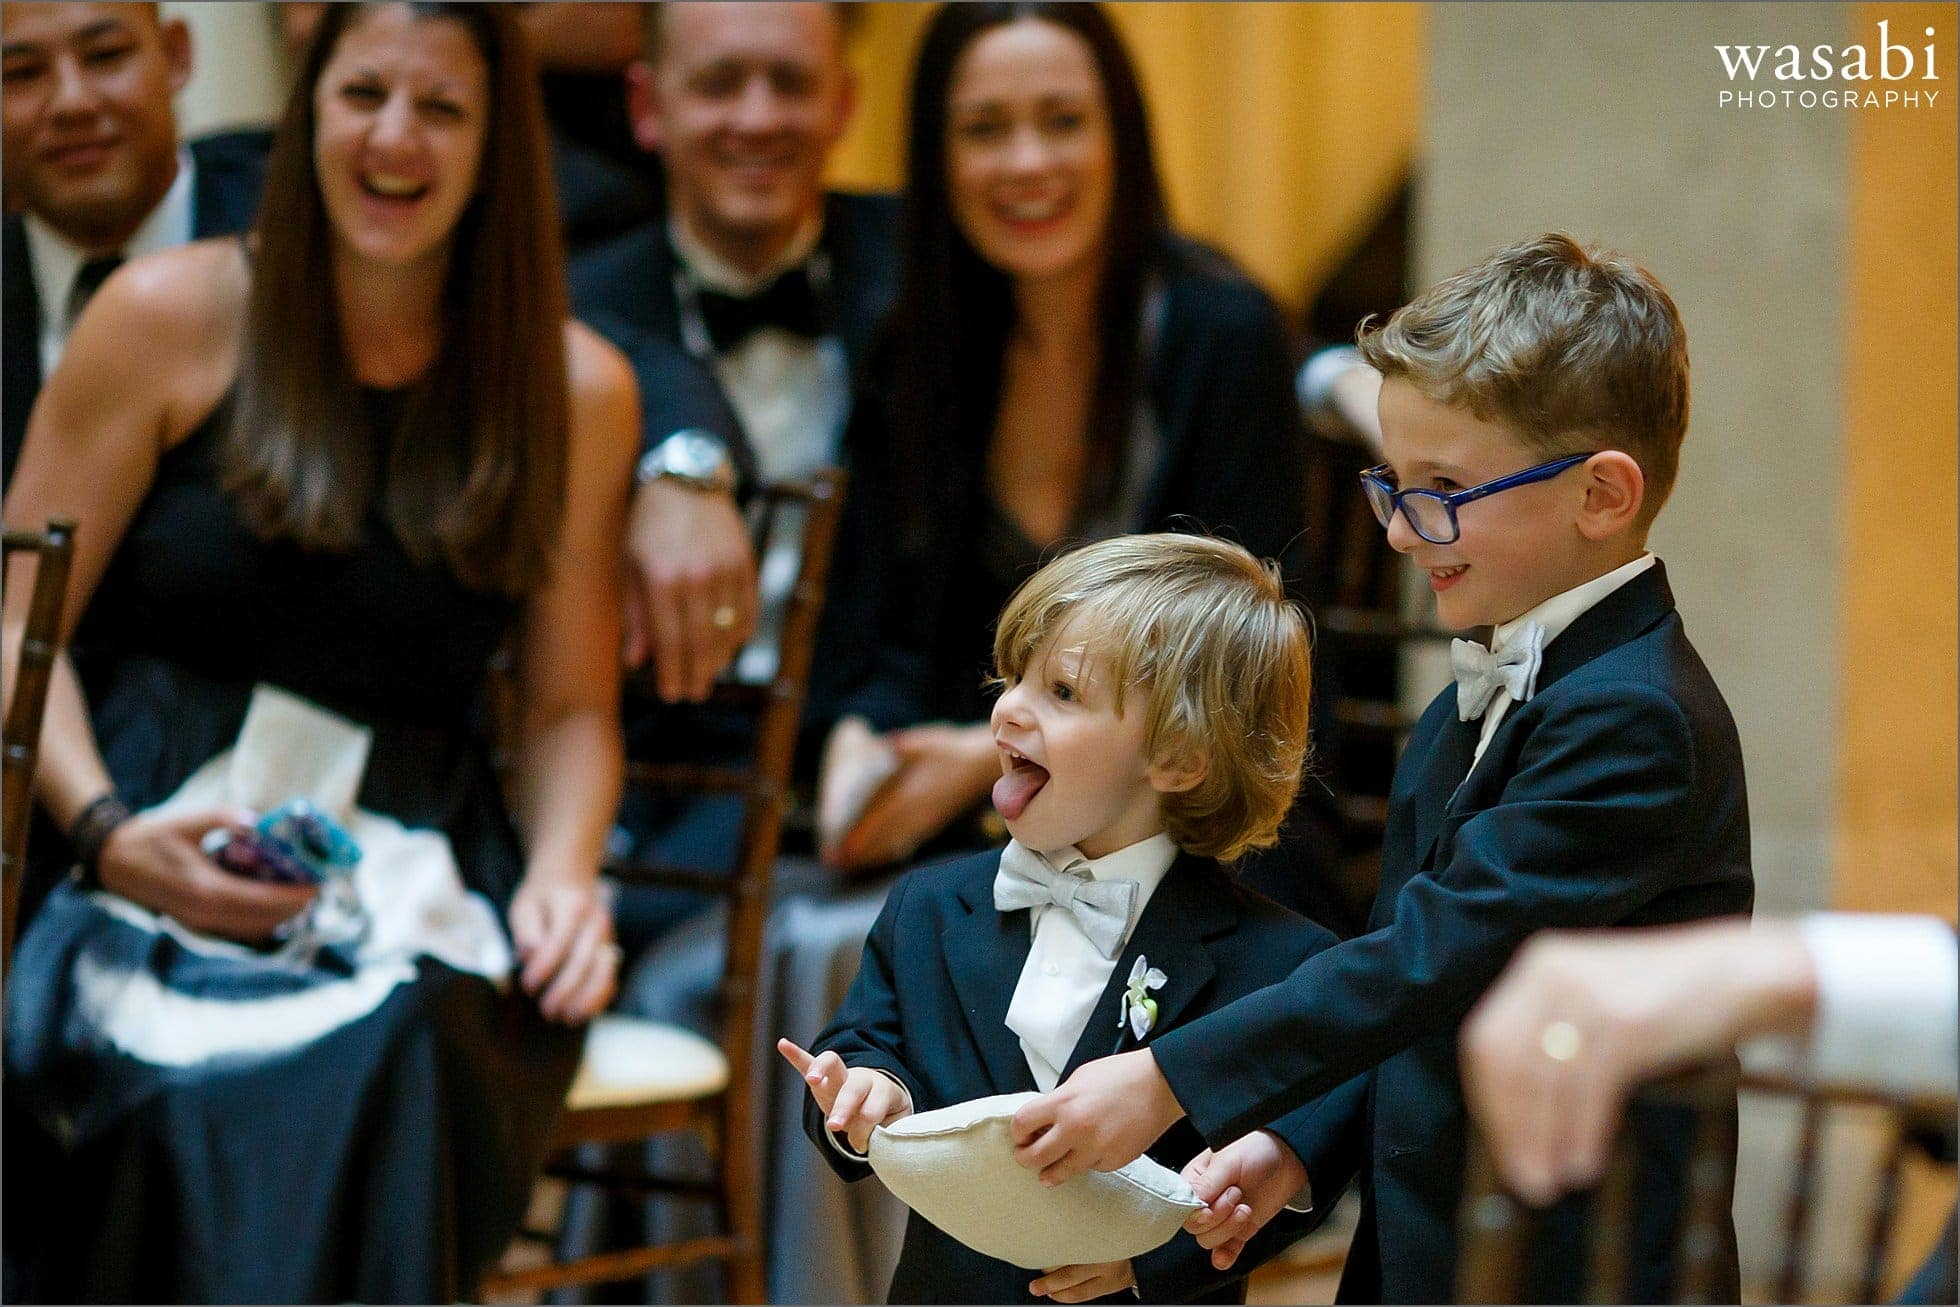 ring bearers carry the wedding rings in before wedding ceremony at The Rookery Building in Chicago